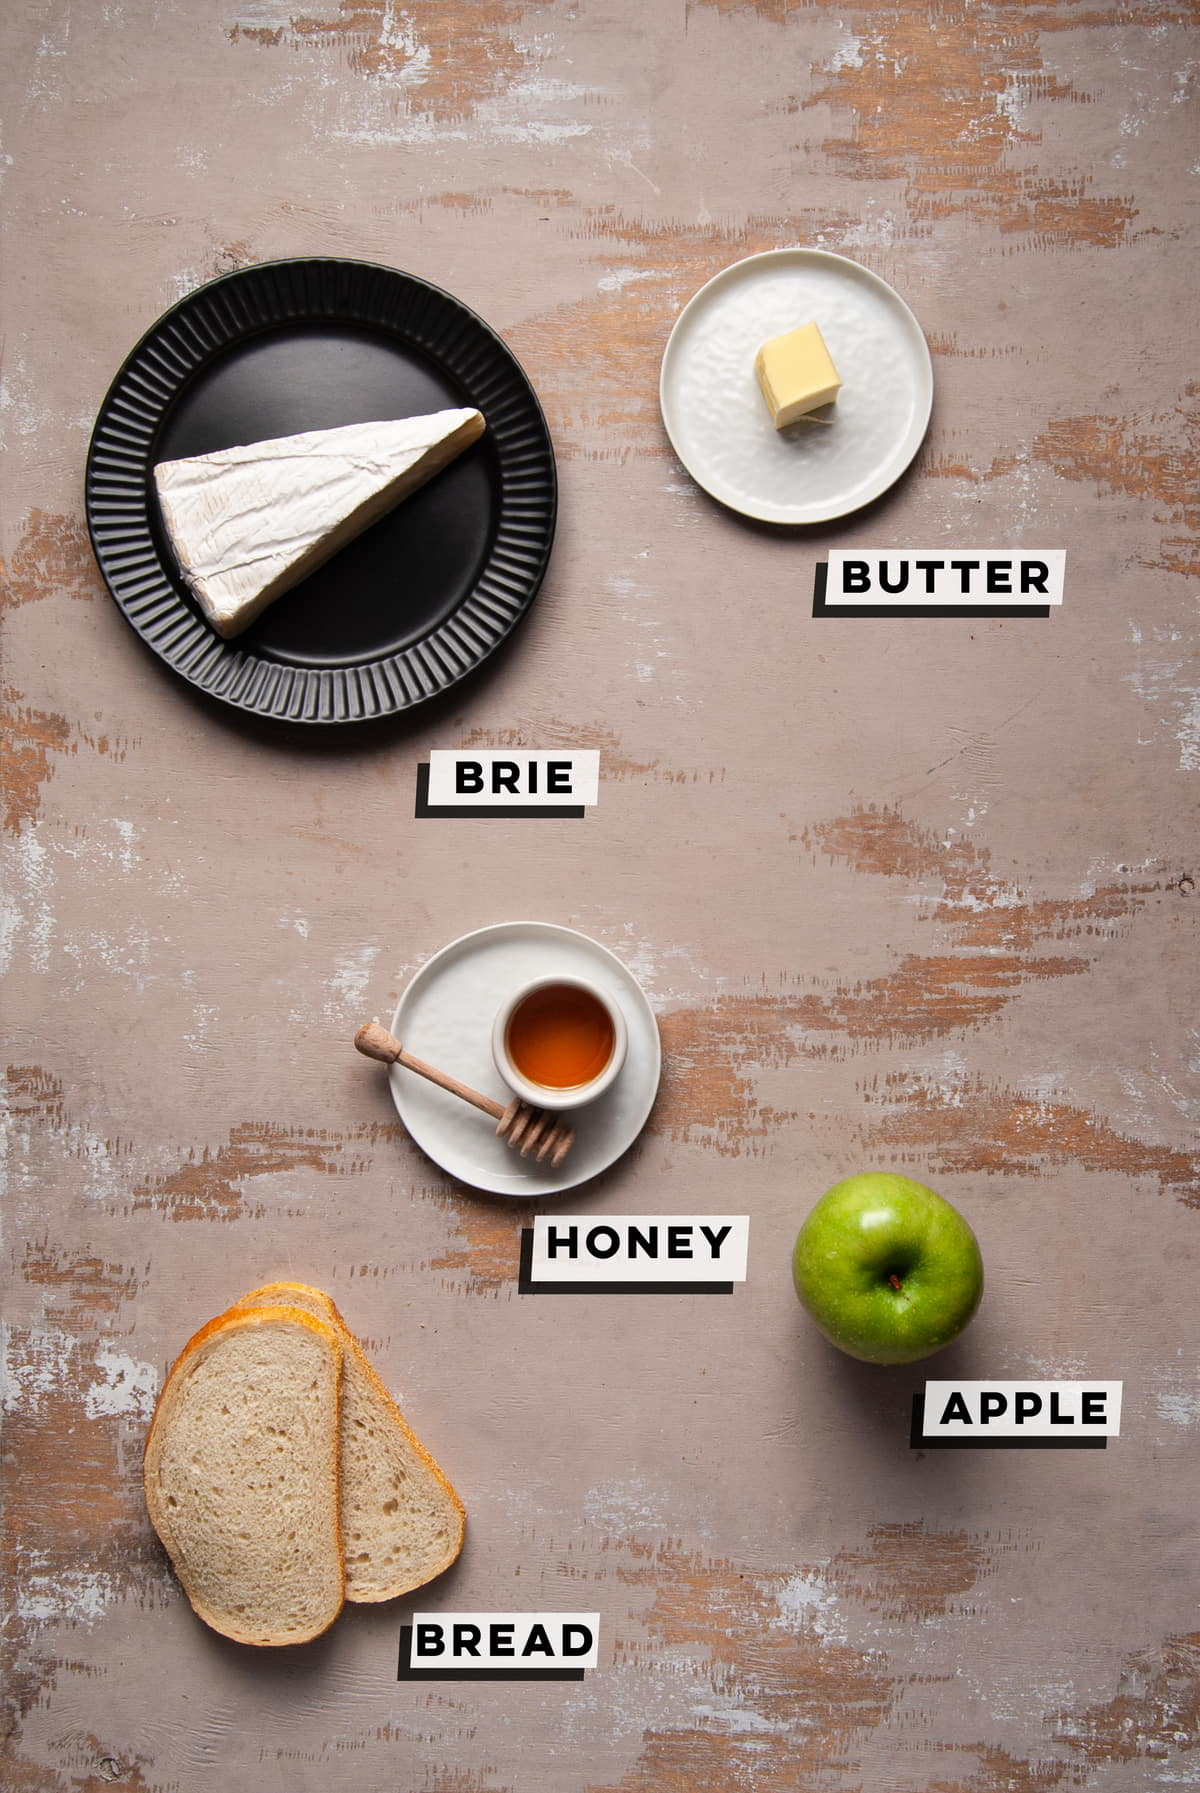 brie, butter, honey, apple, and bread